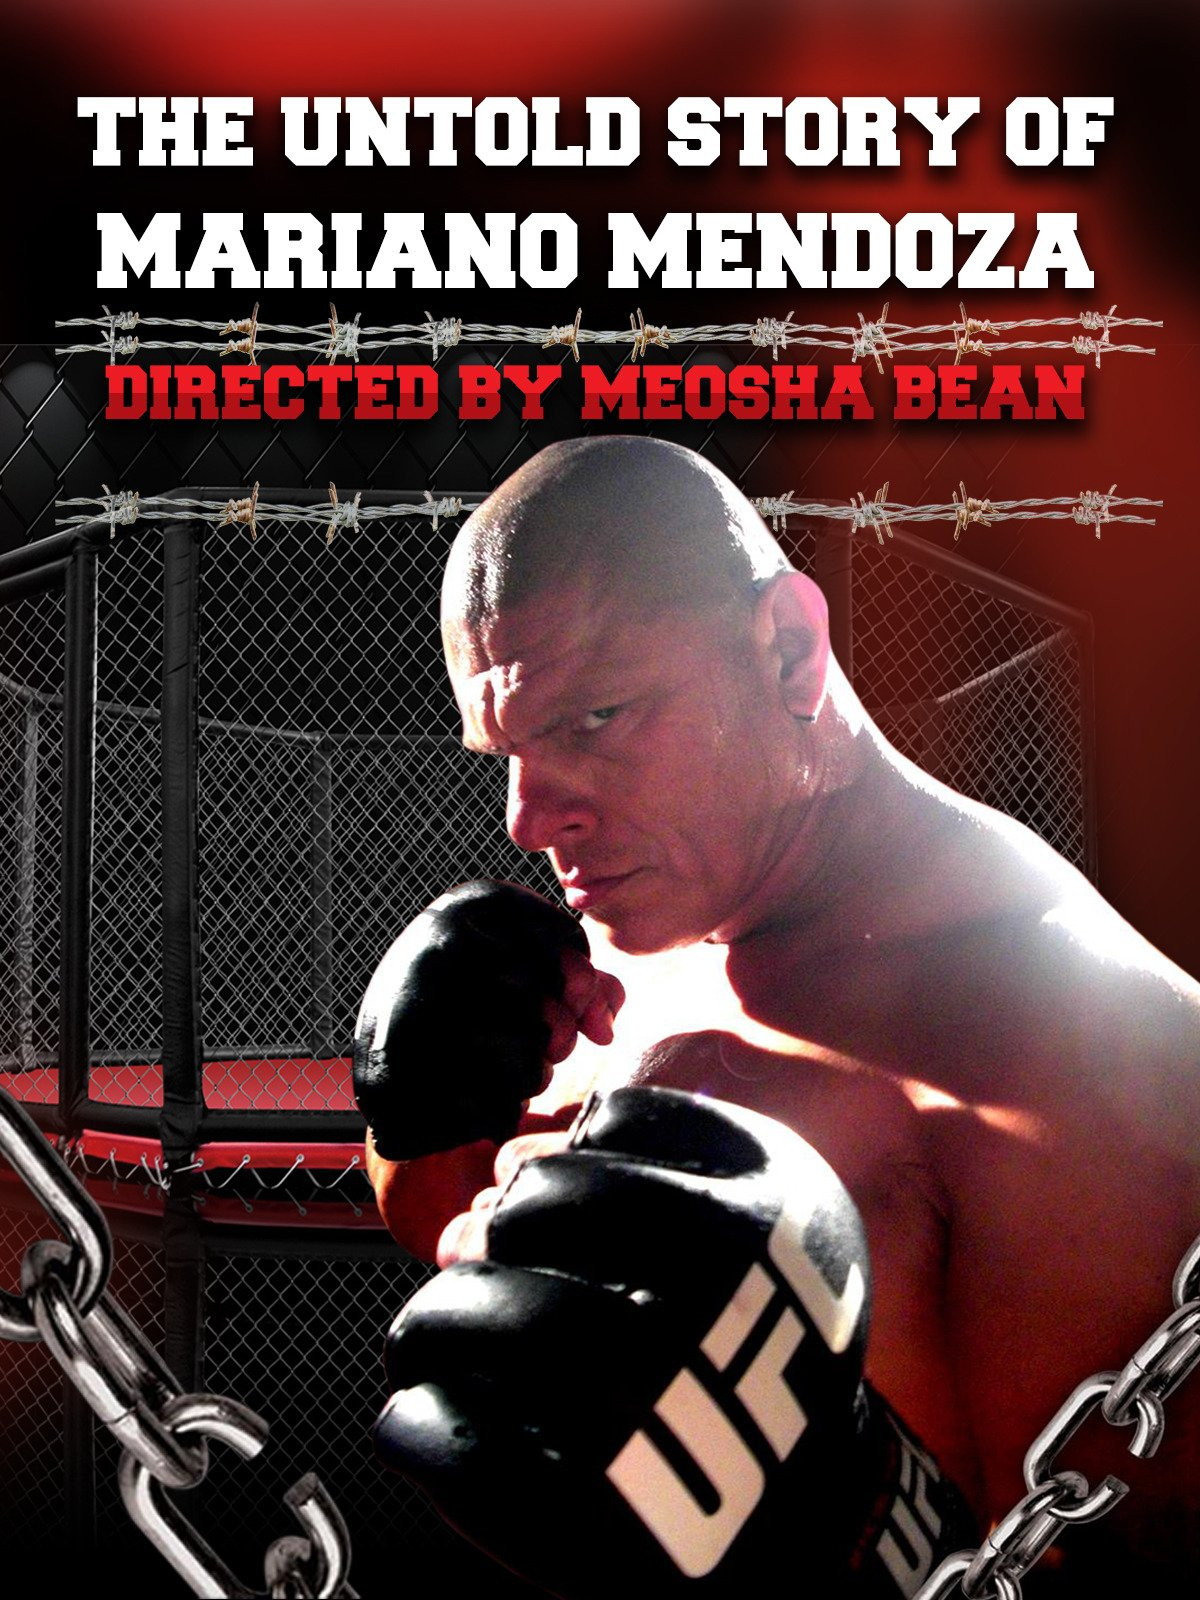 The Untold Story of Mariano Mendoza